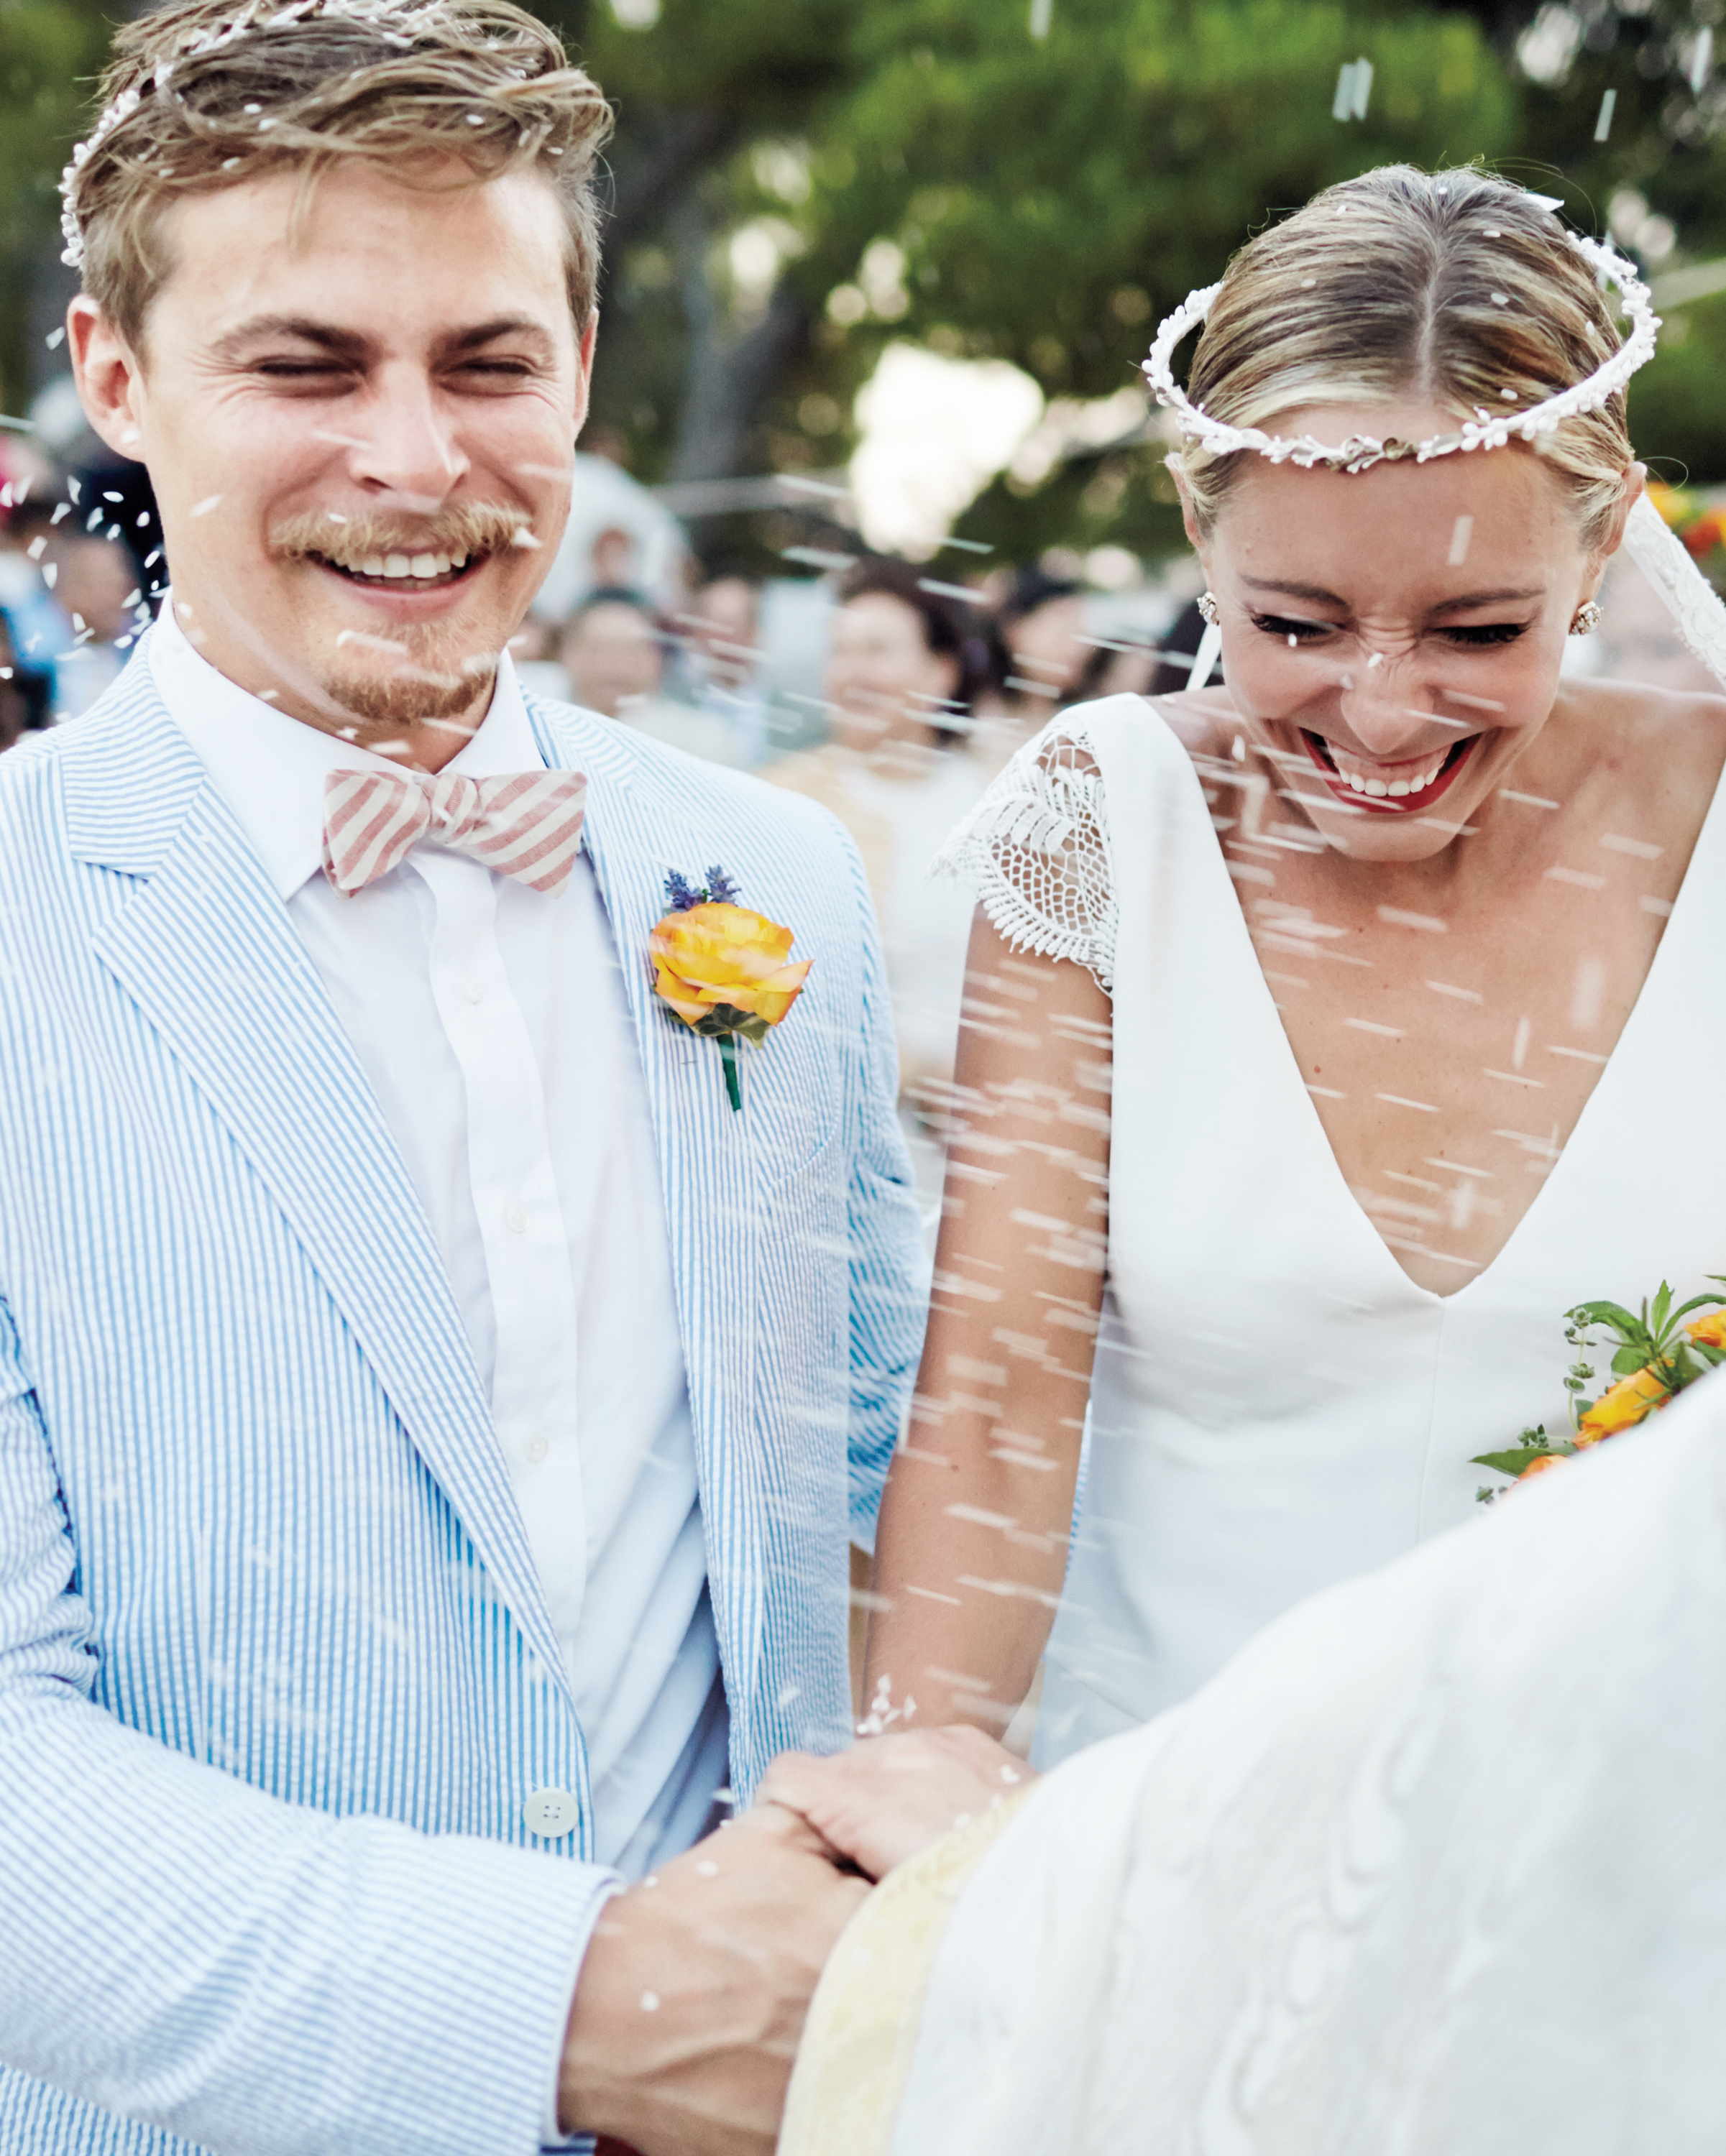 Maddie Rice Wedding.25 Creative Wedding Rituals That Symbolize Unity Martha Stewart